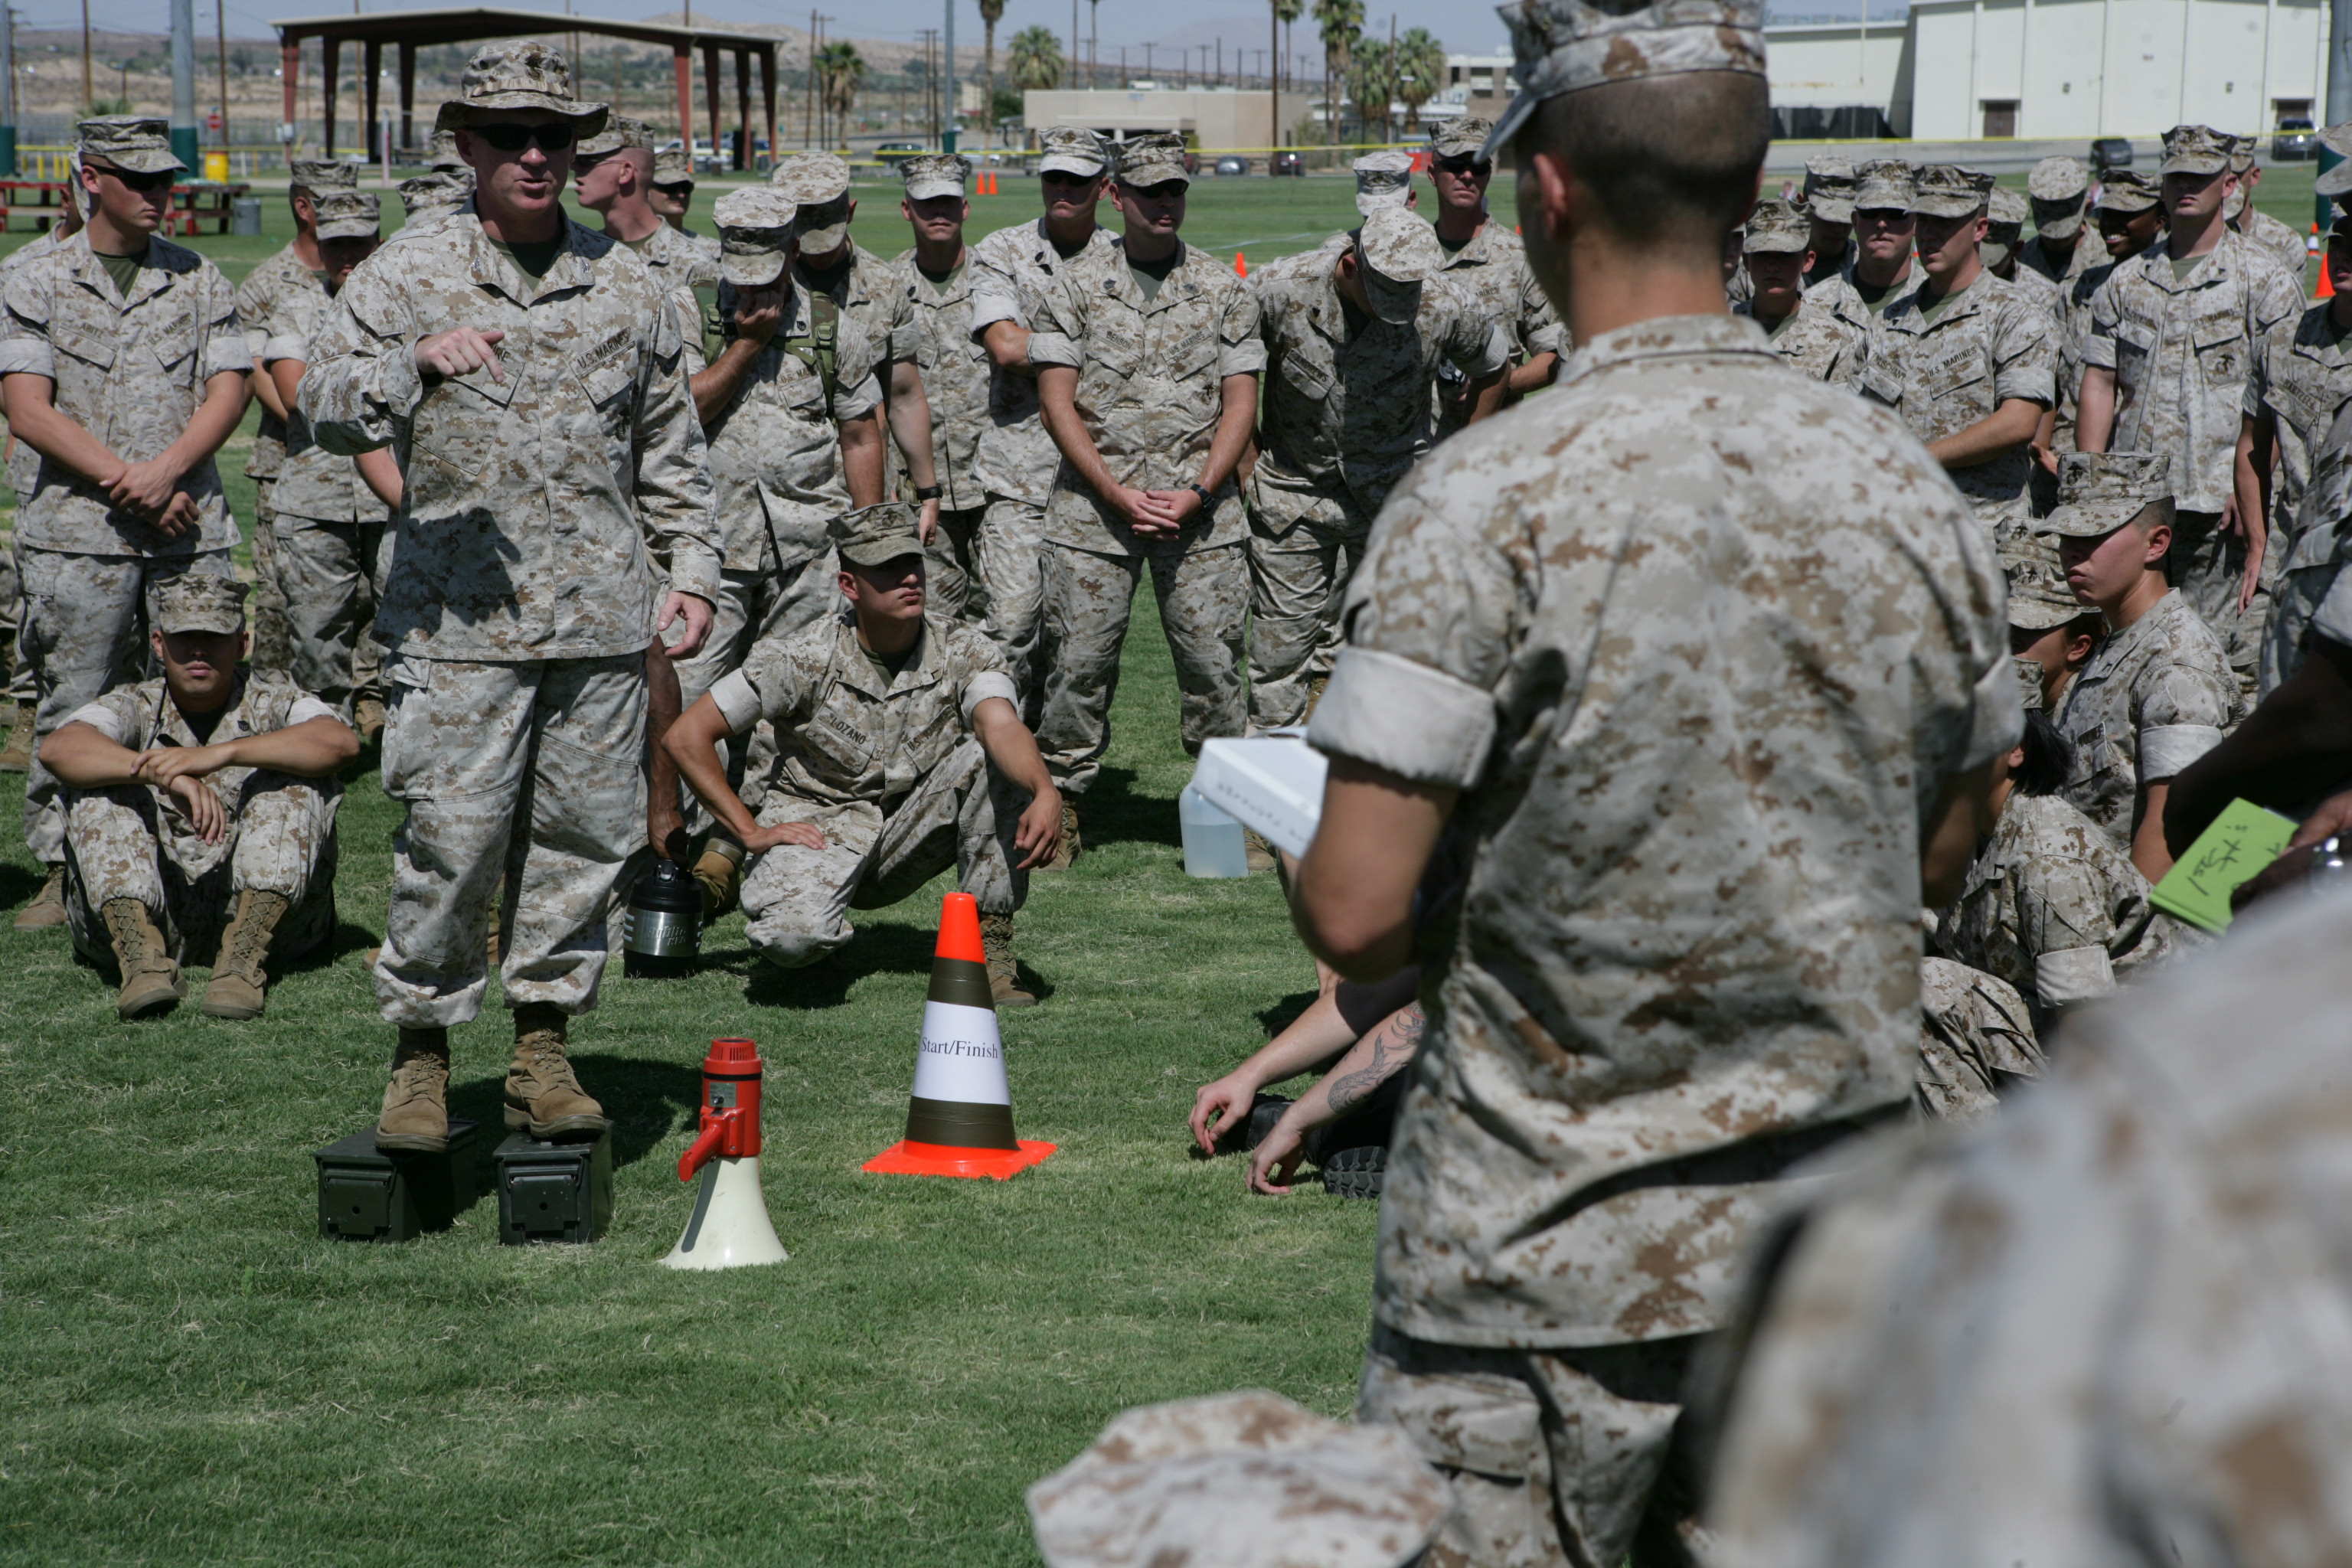 Fitness Roadshow visits Combat Center, shows off CFT